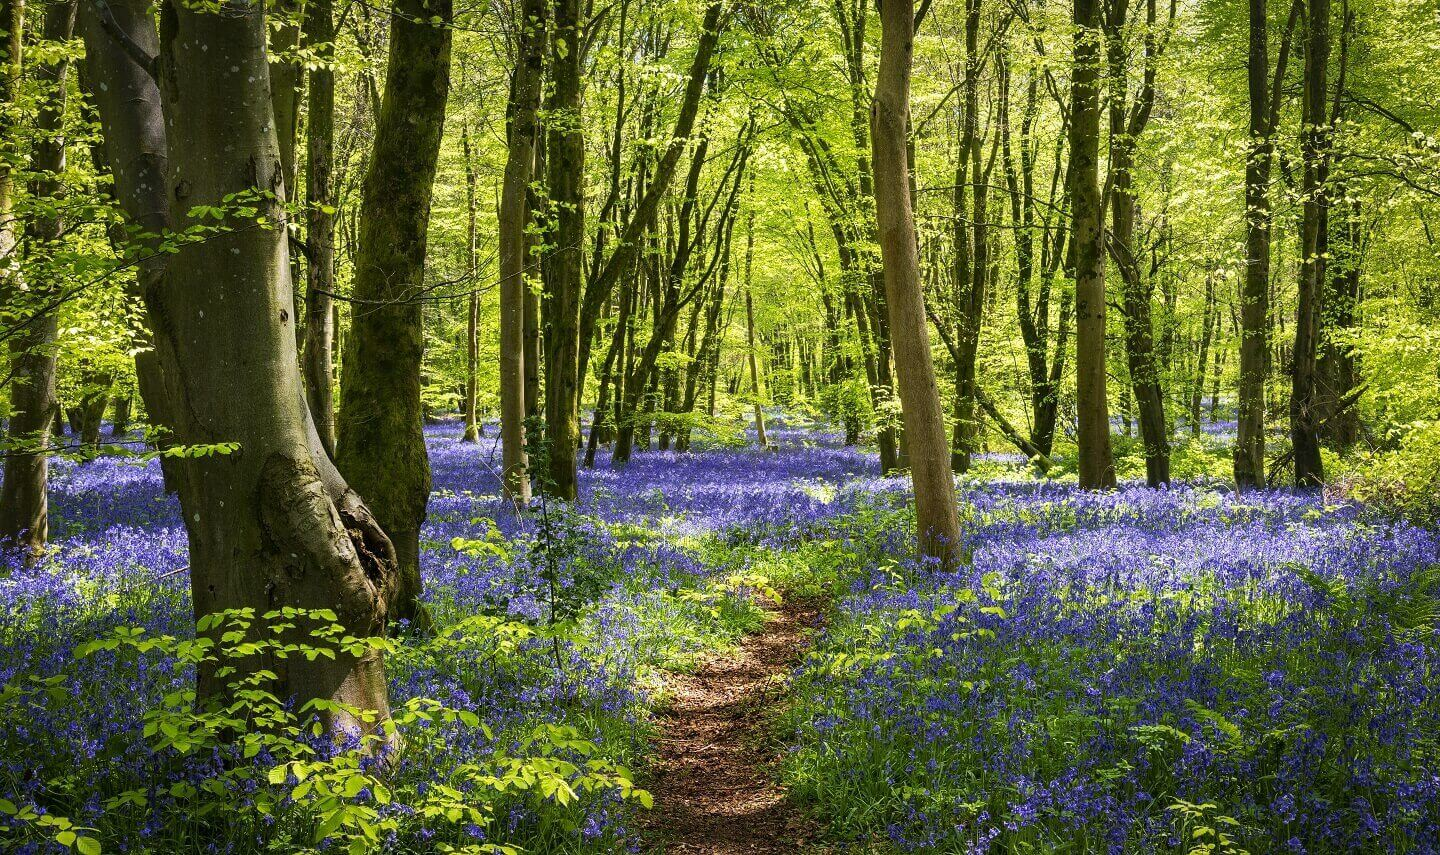 A view of trees in a UK woodland